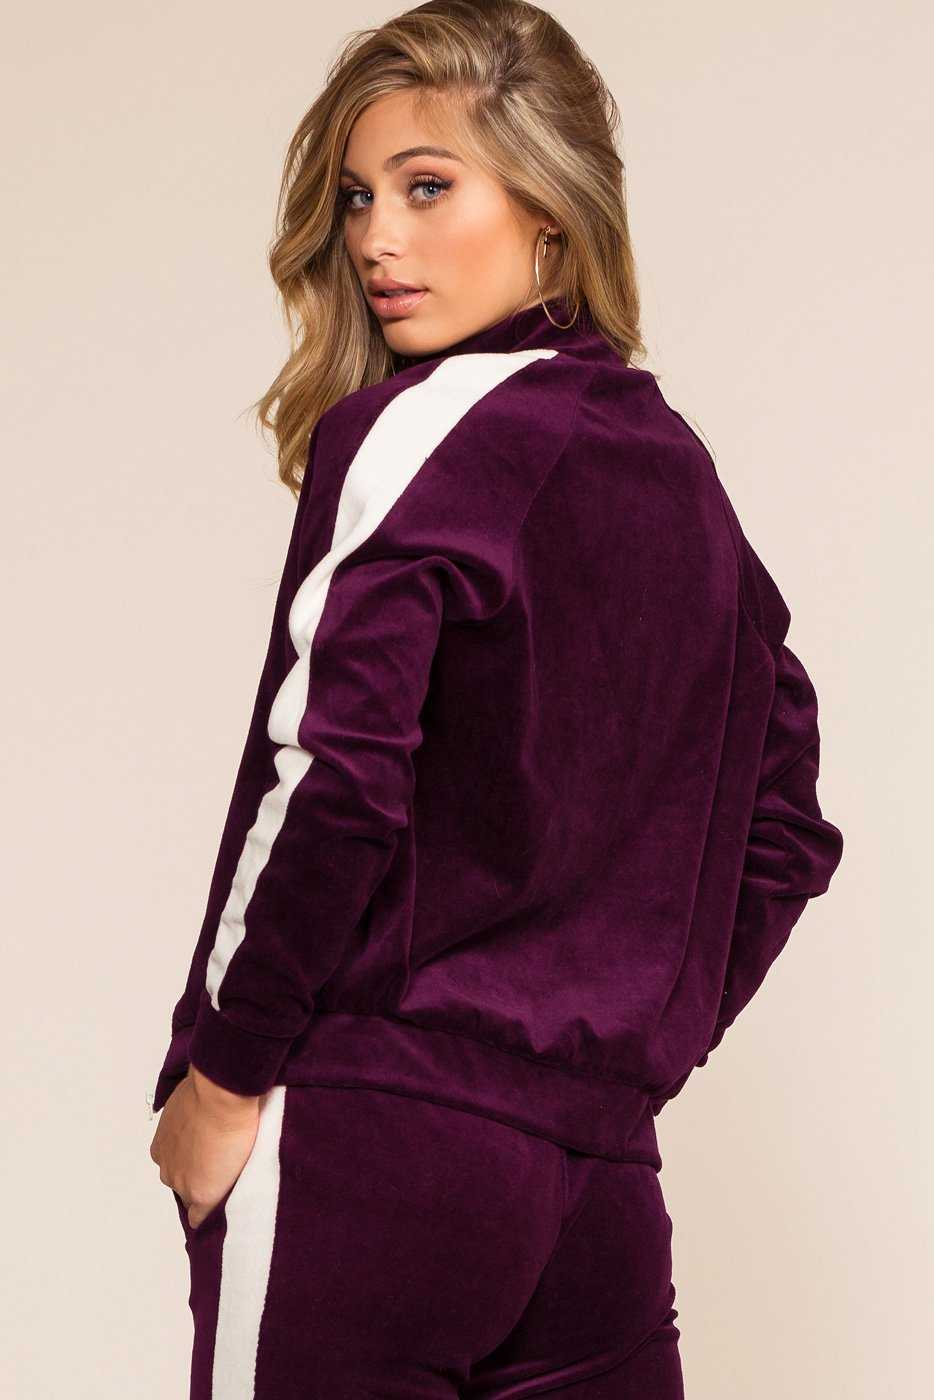 Jackets - Track It Jacket - Plum